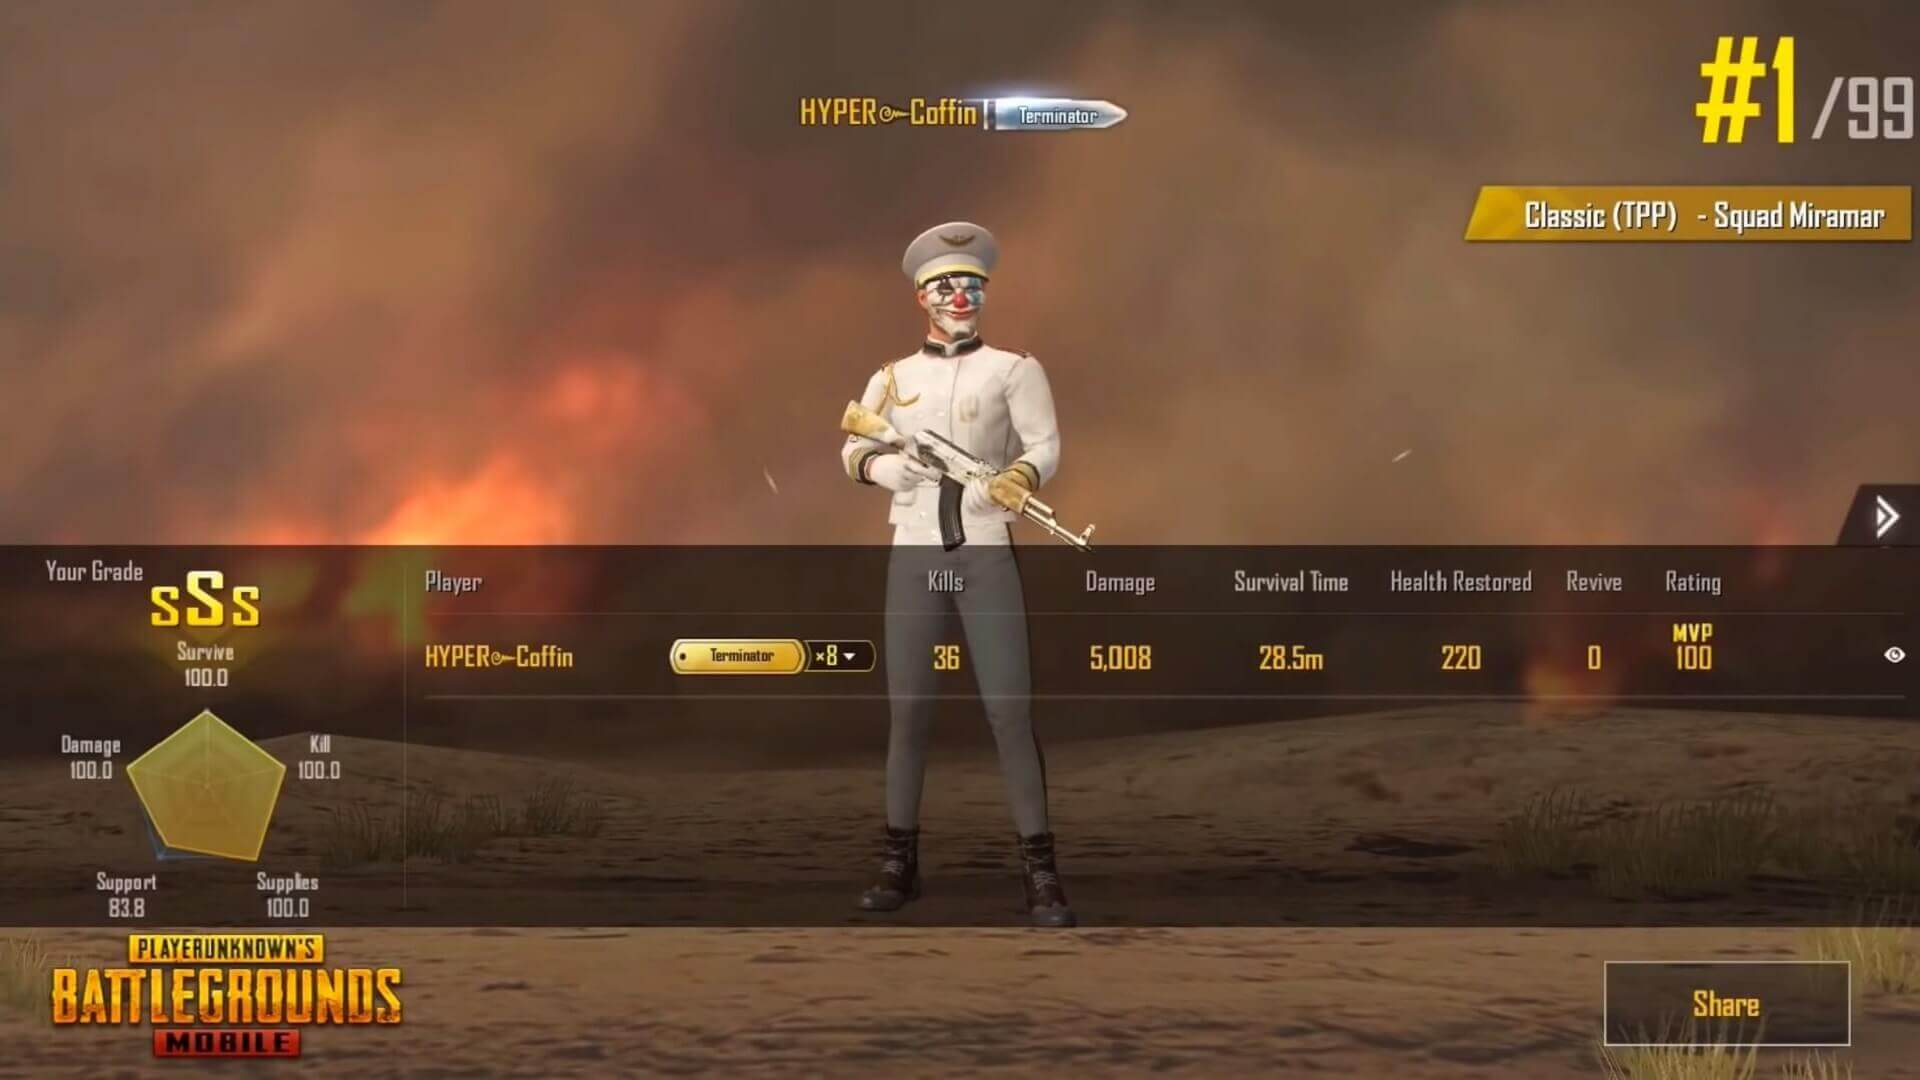 HD Picture of Coffin highest kills is 36 in pubg mobile